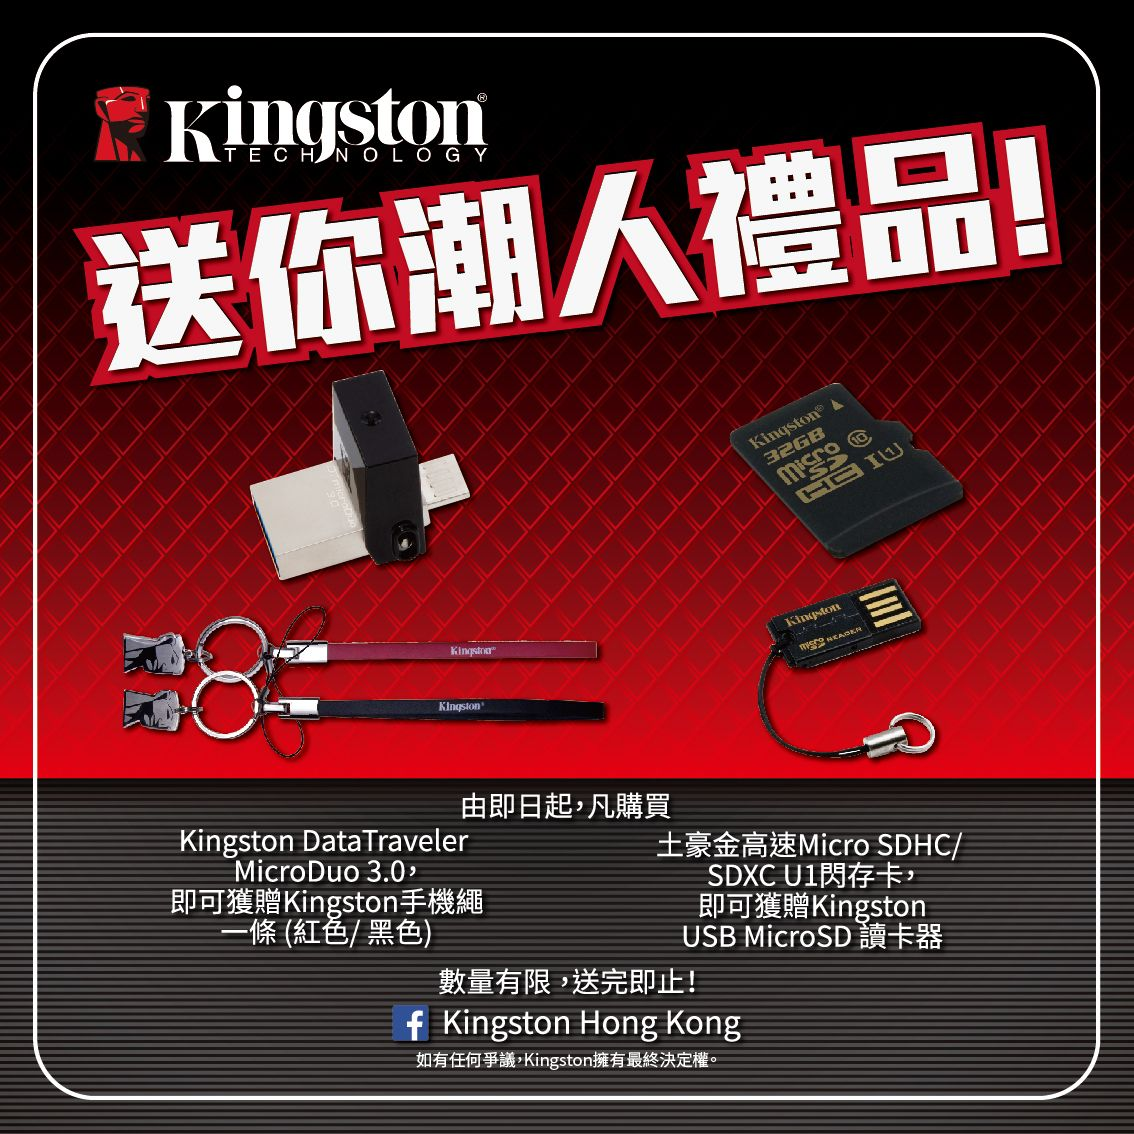 Kingston Summer promotion